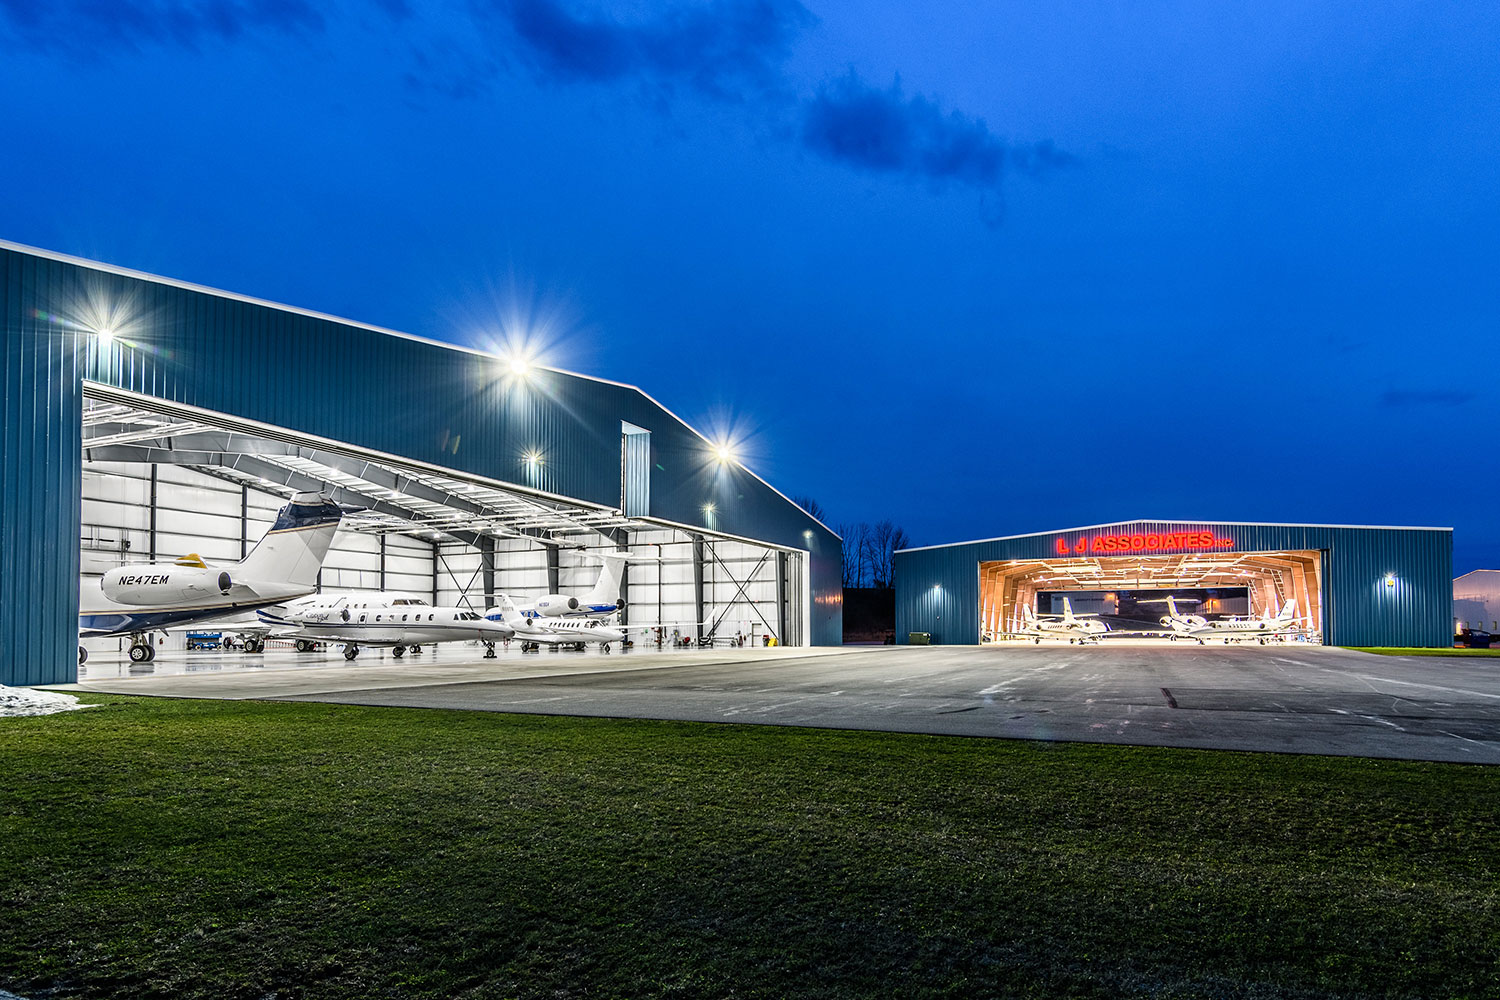 Six hangars and 120,000+ square feet of hangar storage space available.